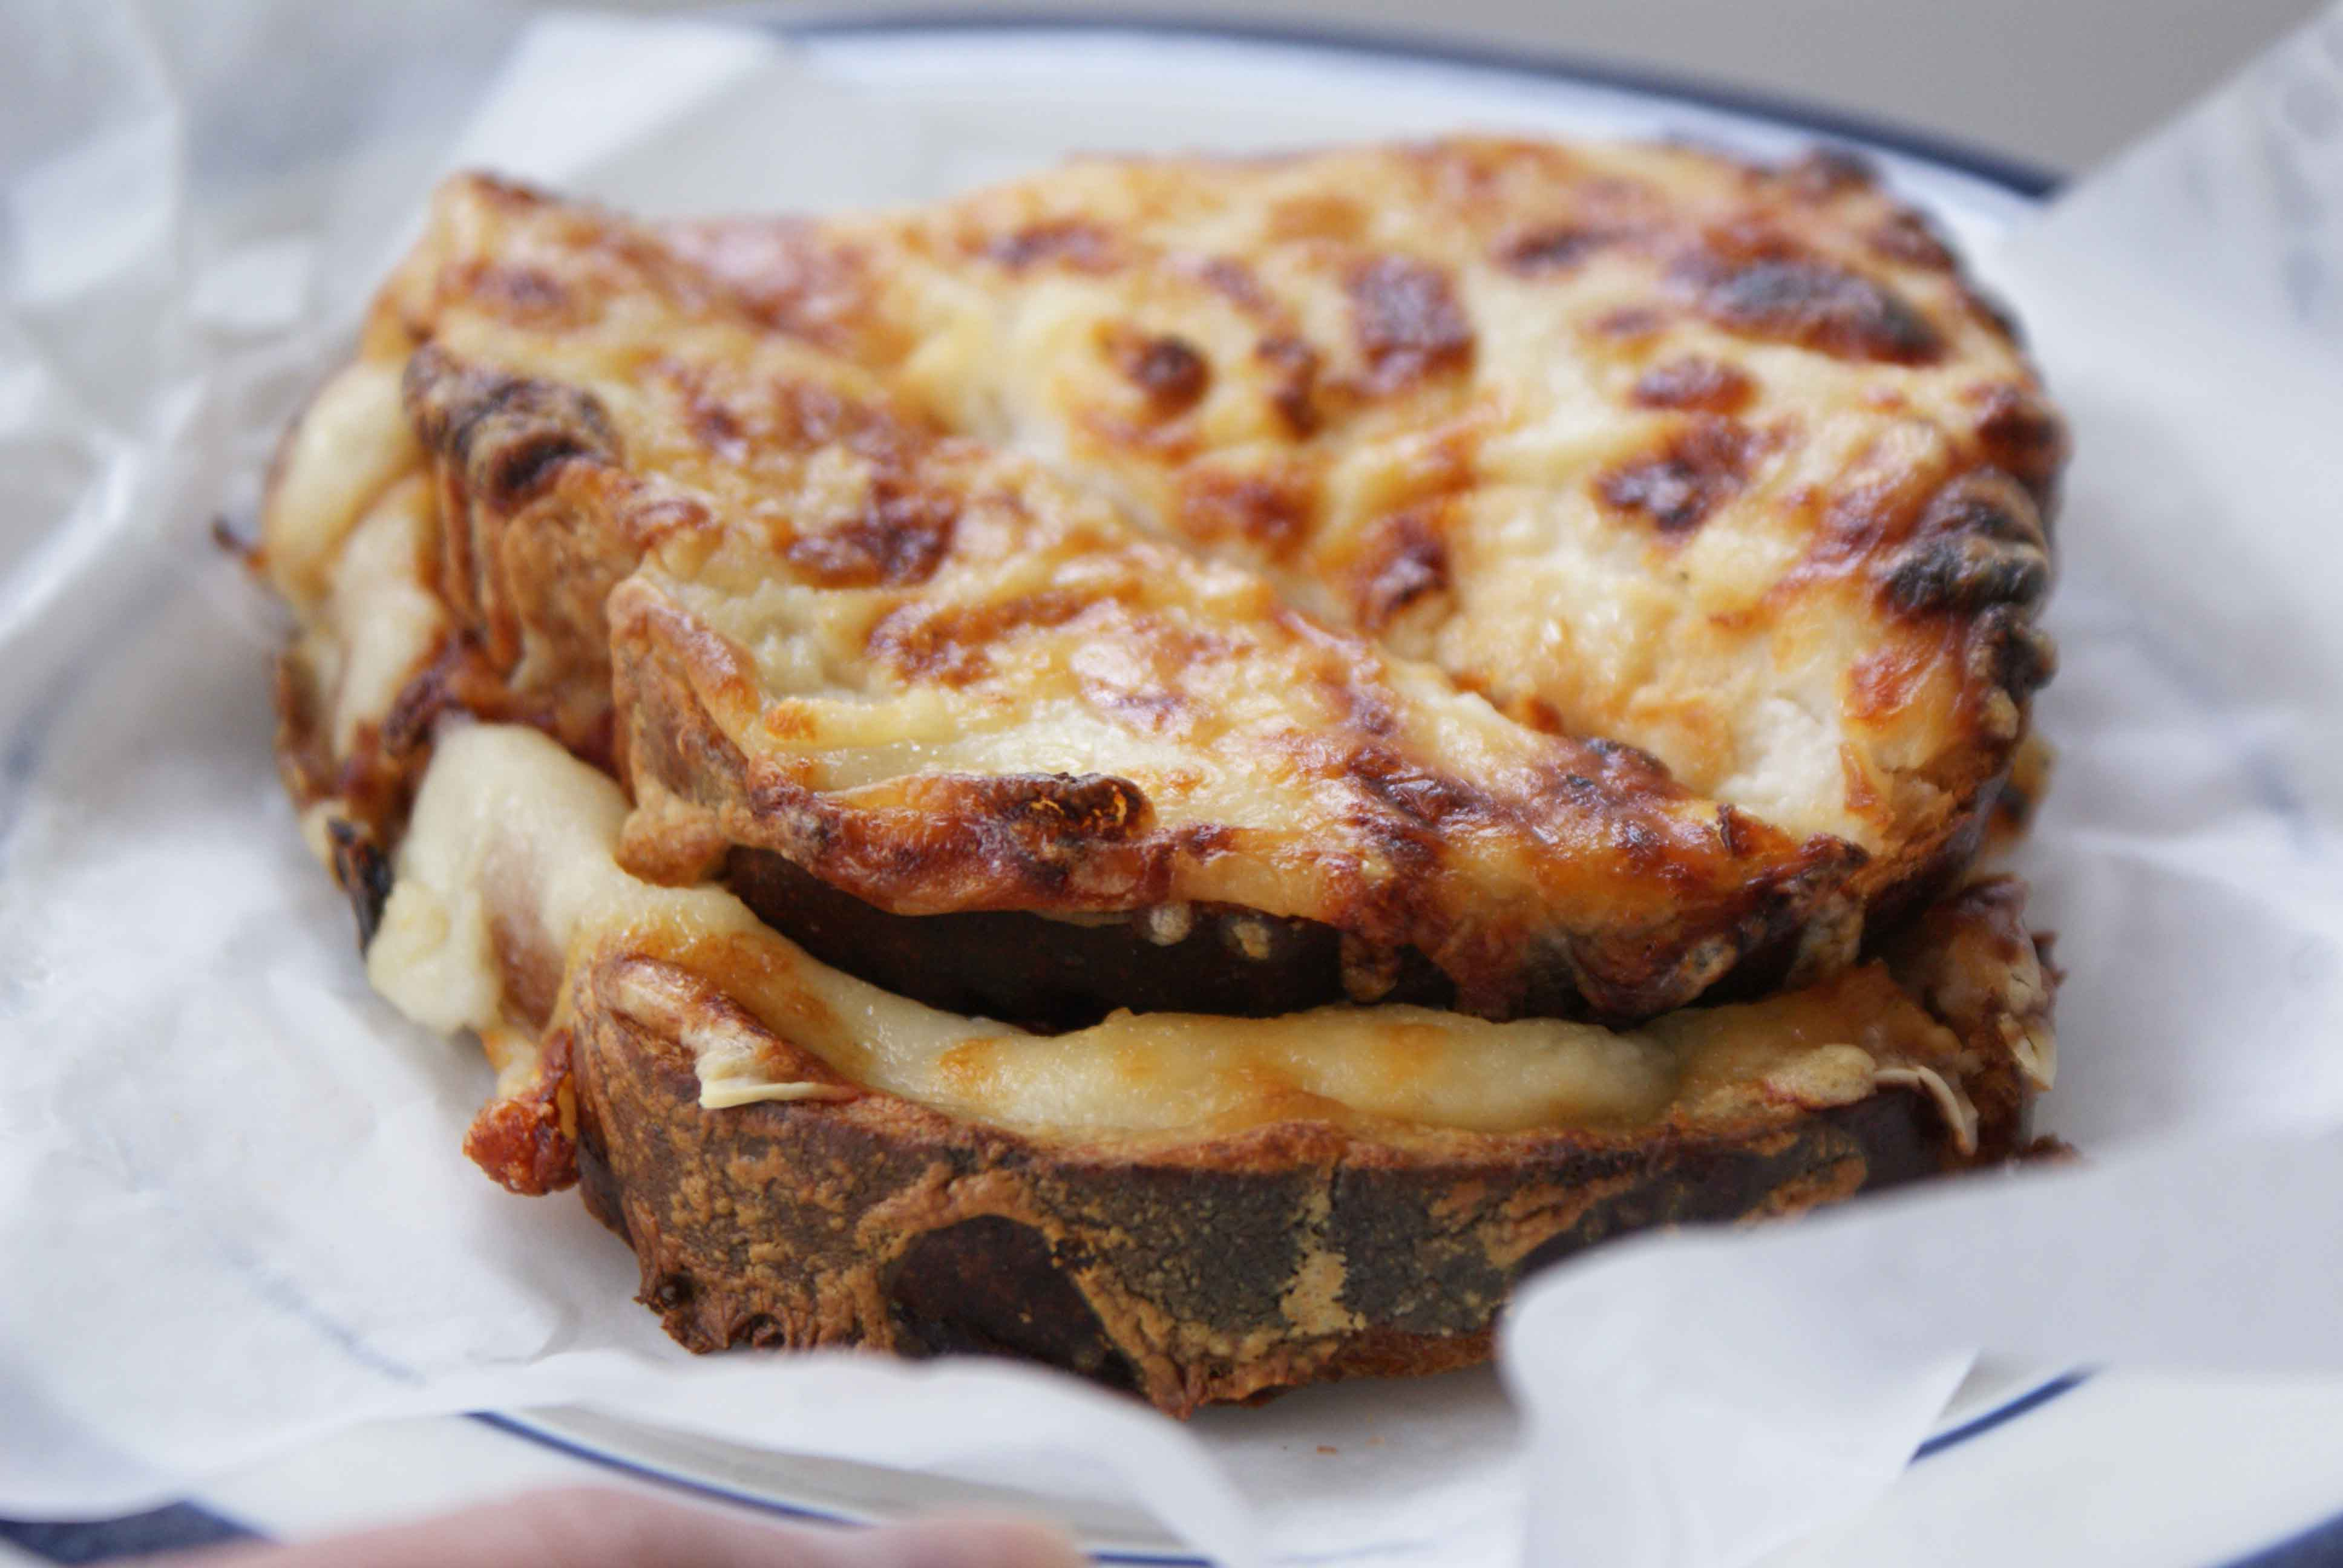 Delicious snacks, Croque Monsieur, France, Presentation 04